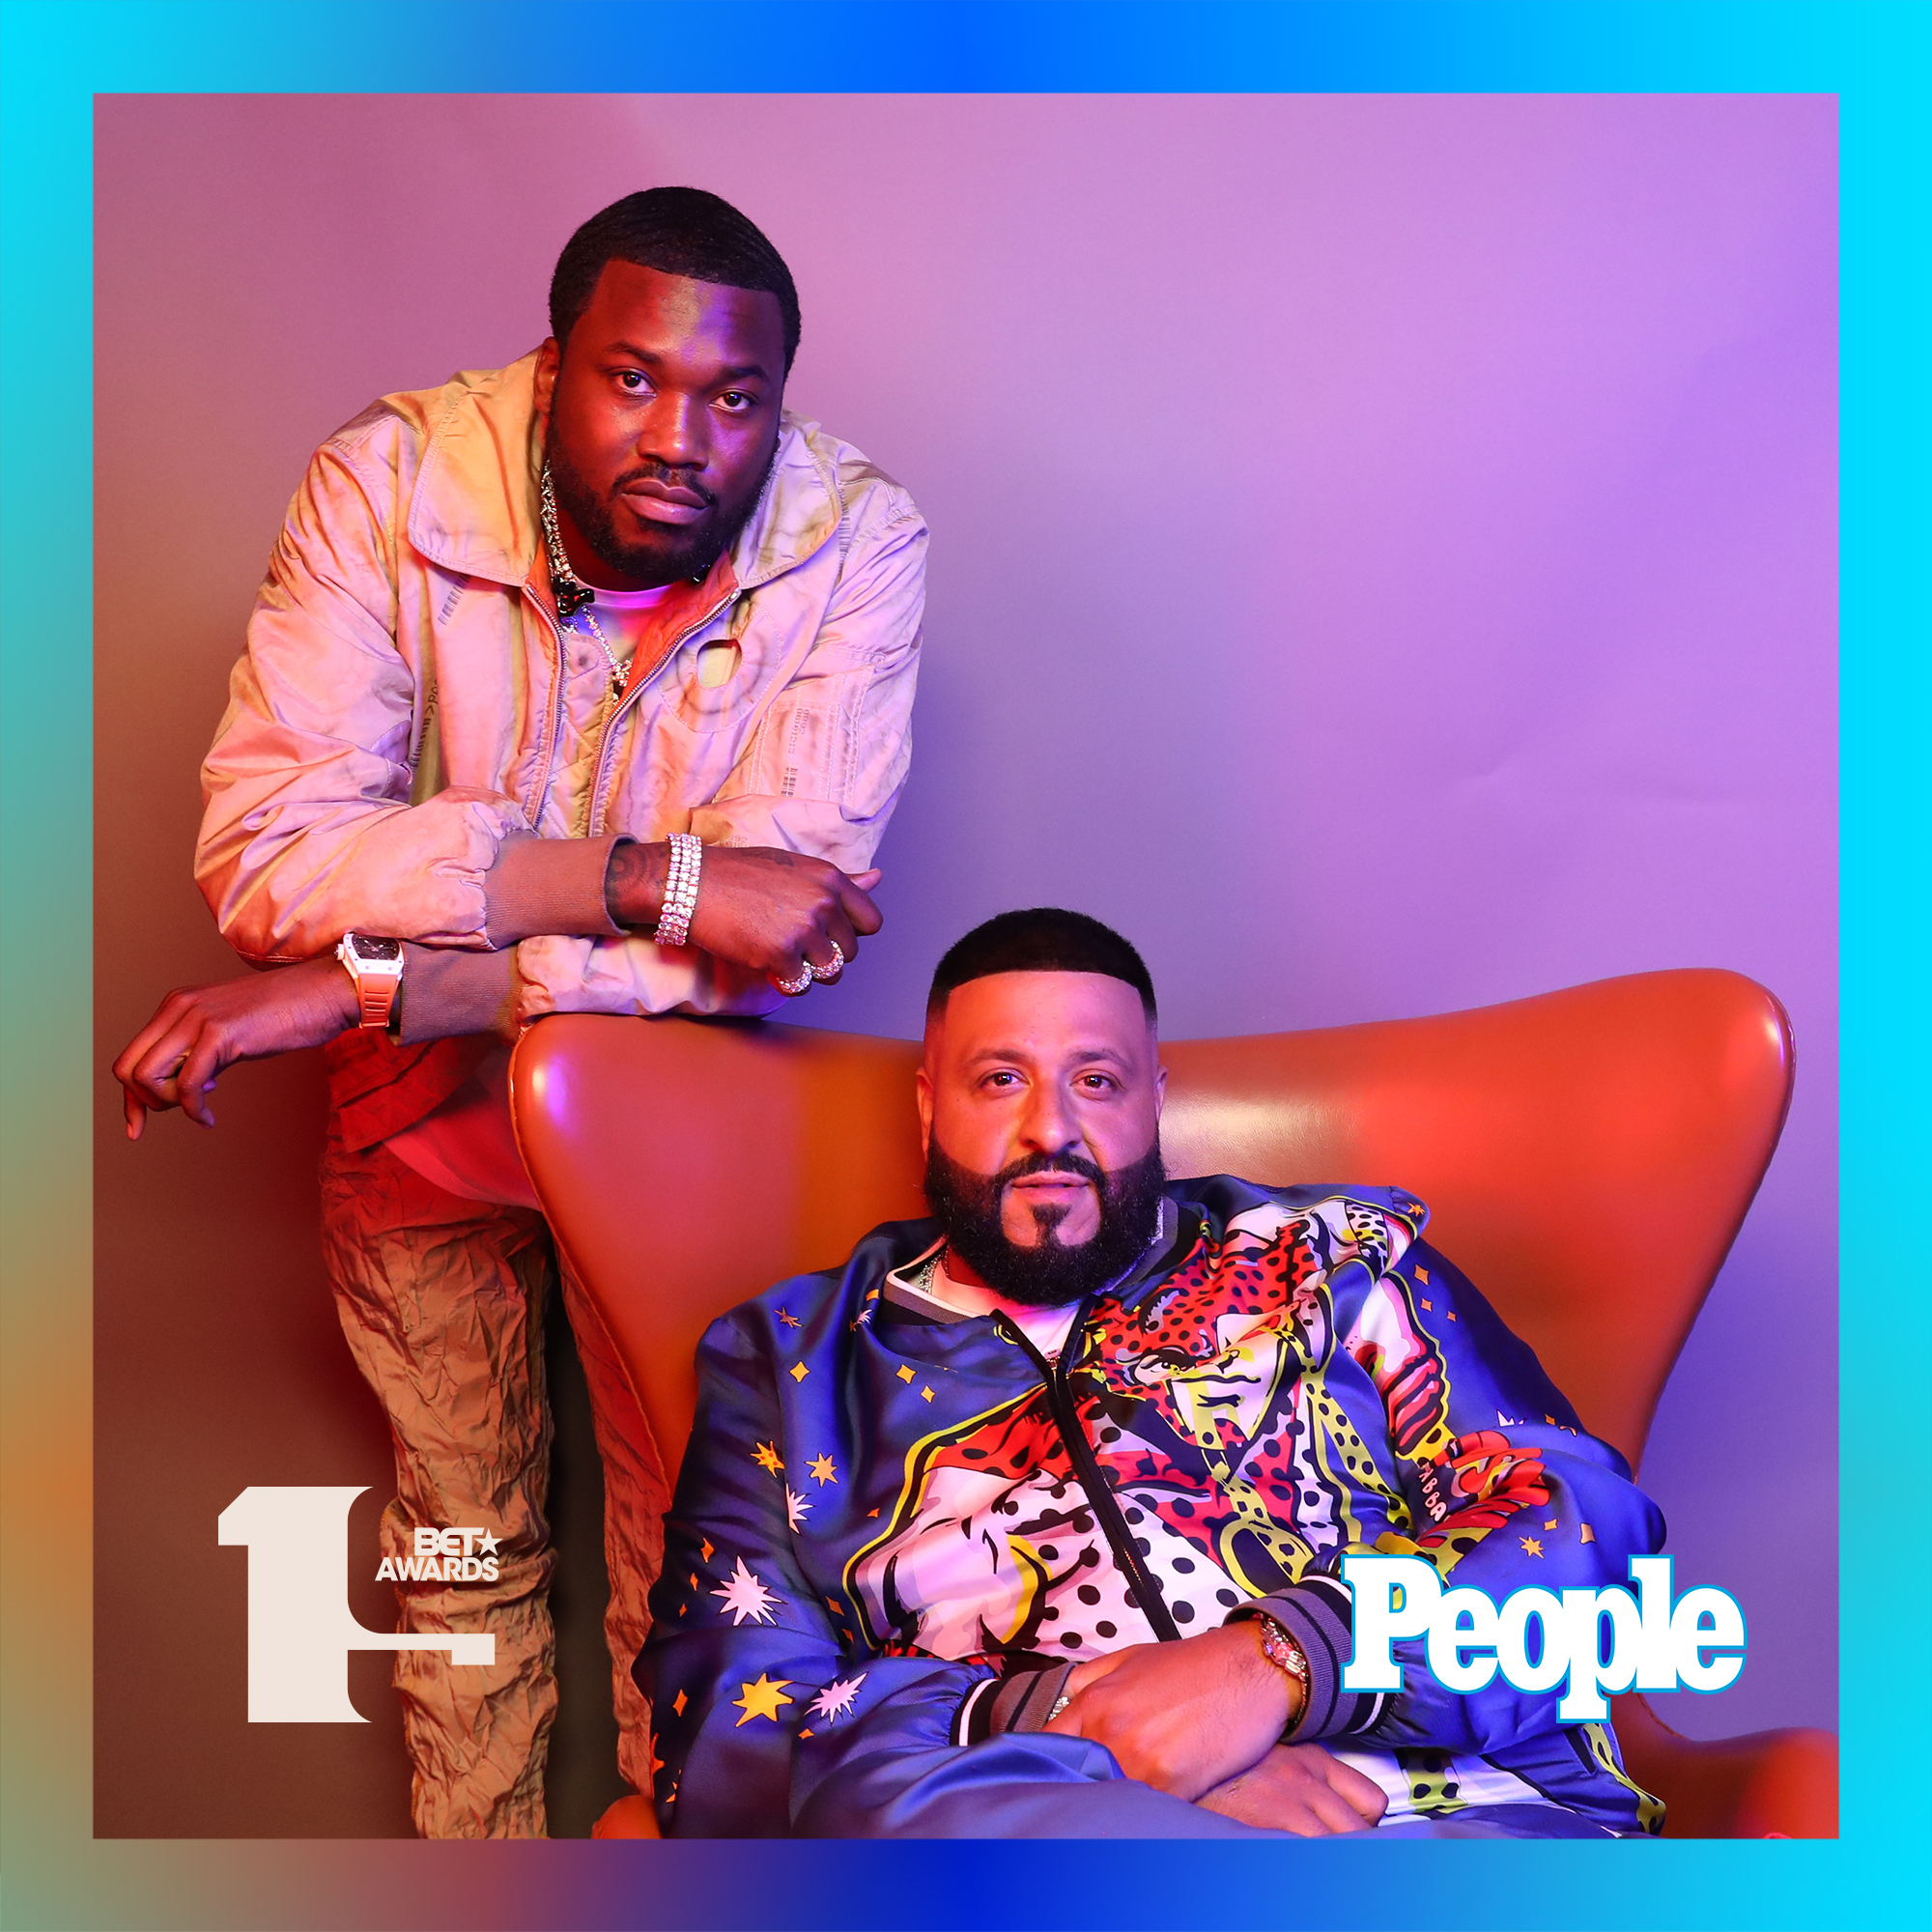 Meek Mill and DJ Khaled photographed at the 2019 BET Awards by Bennett Raglin exclusively for PEOPLE Credit: Bennett Raglin